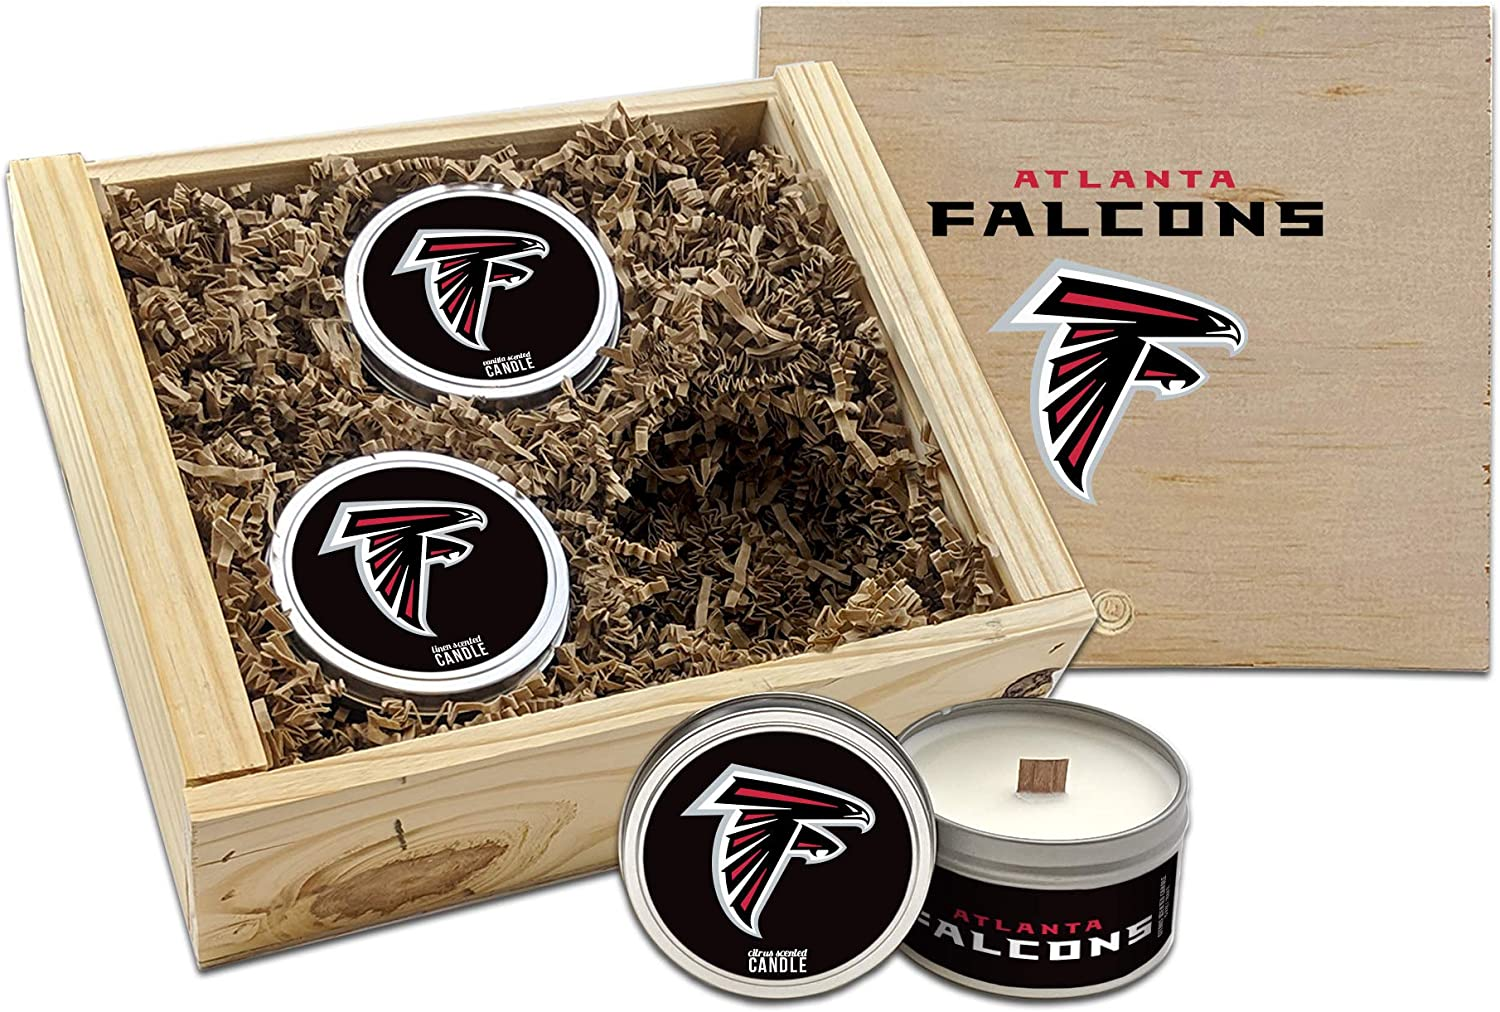 Worthy Promo NFL Atlanta Falcons Gifts 8oz Scented Candle Soy Wax w//Wood Wick and Lid Cotton Candy